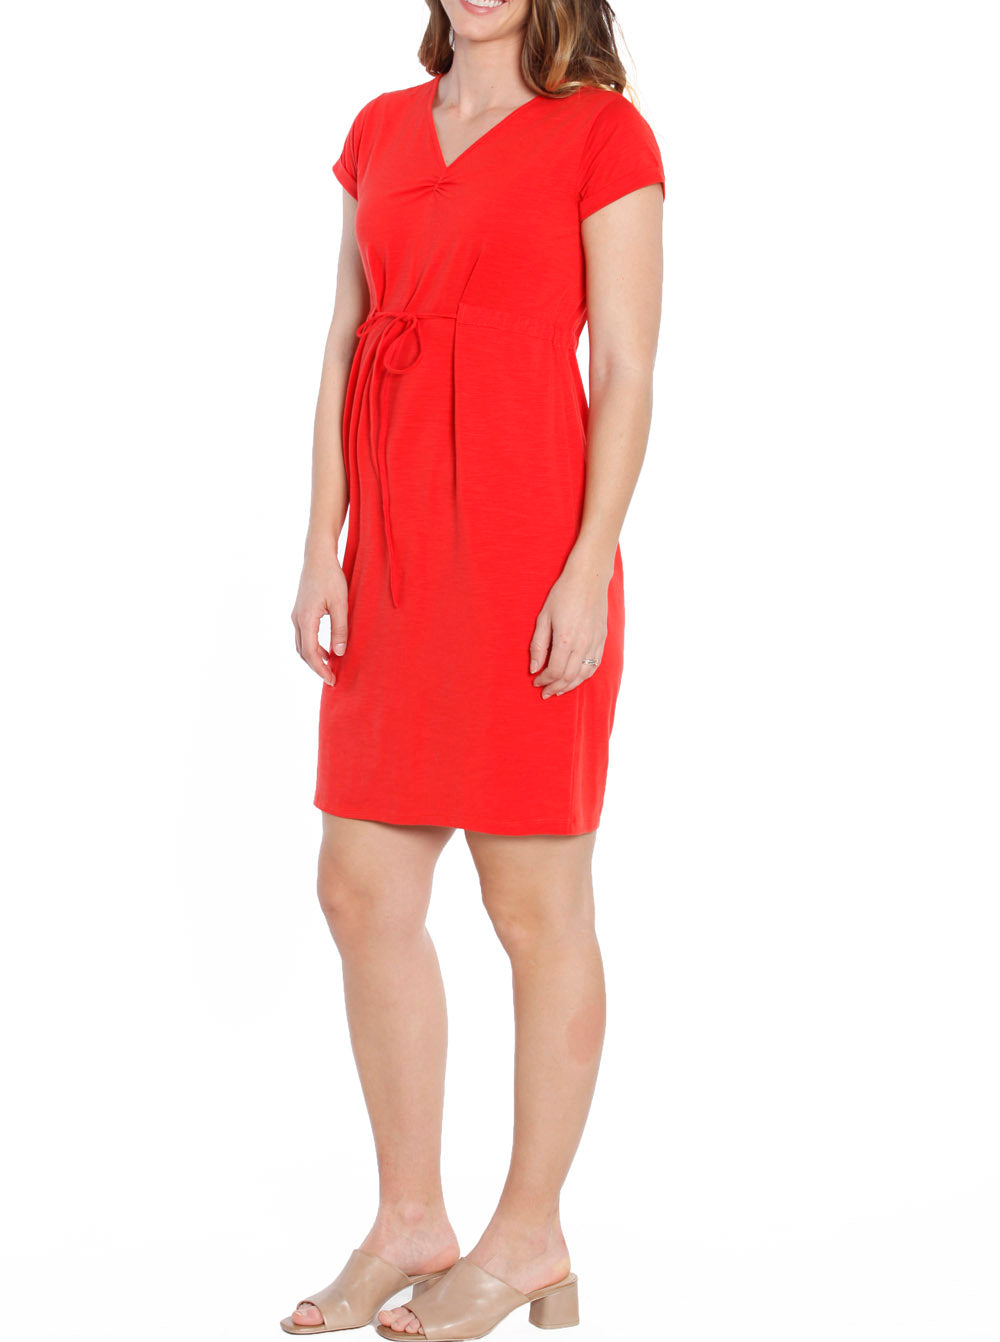 TMD - The Mommy Drawstring Dress - Chili Red